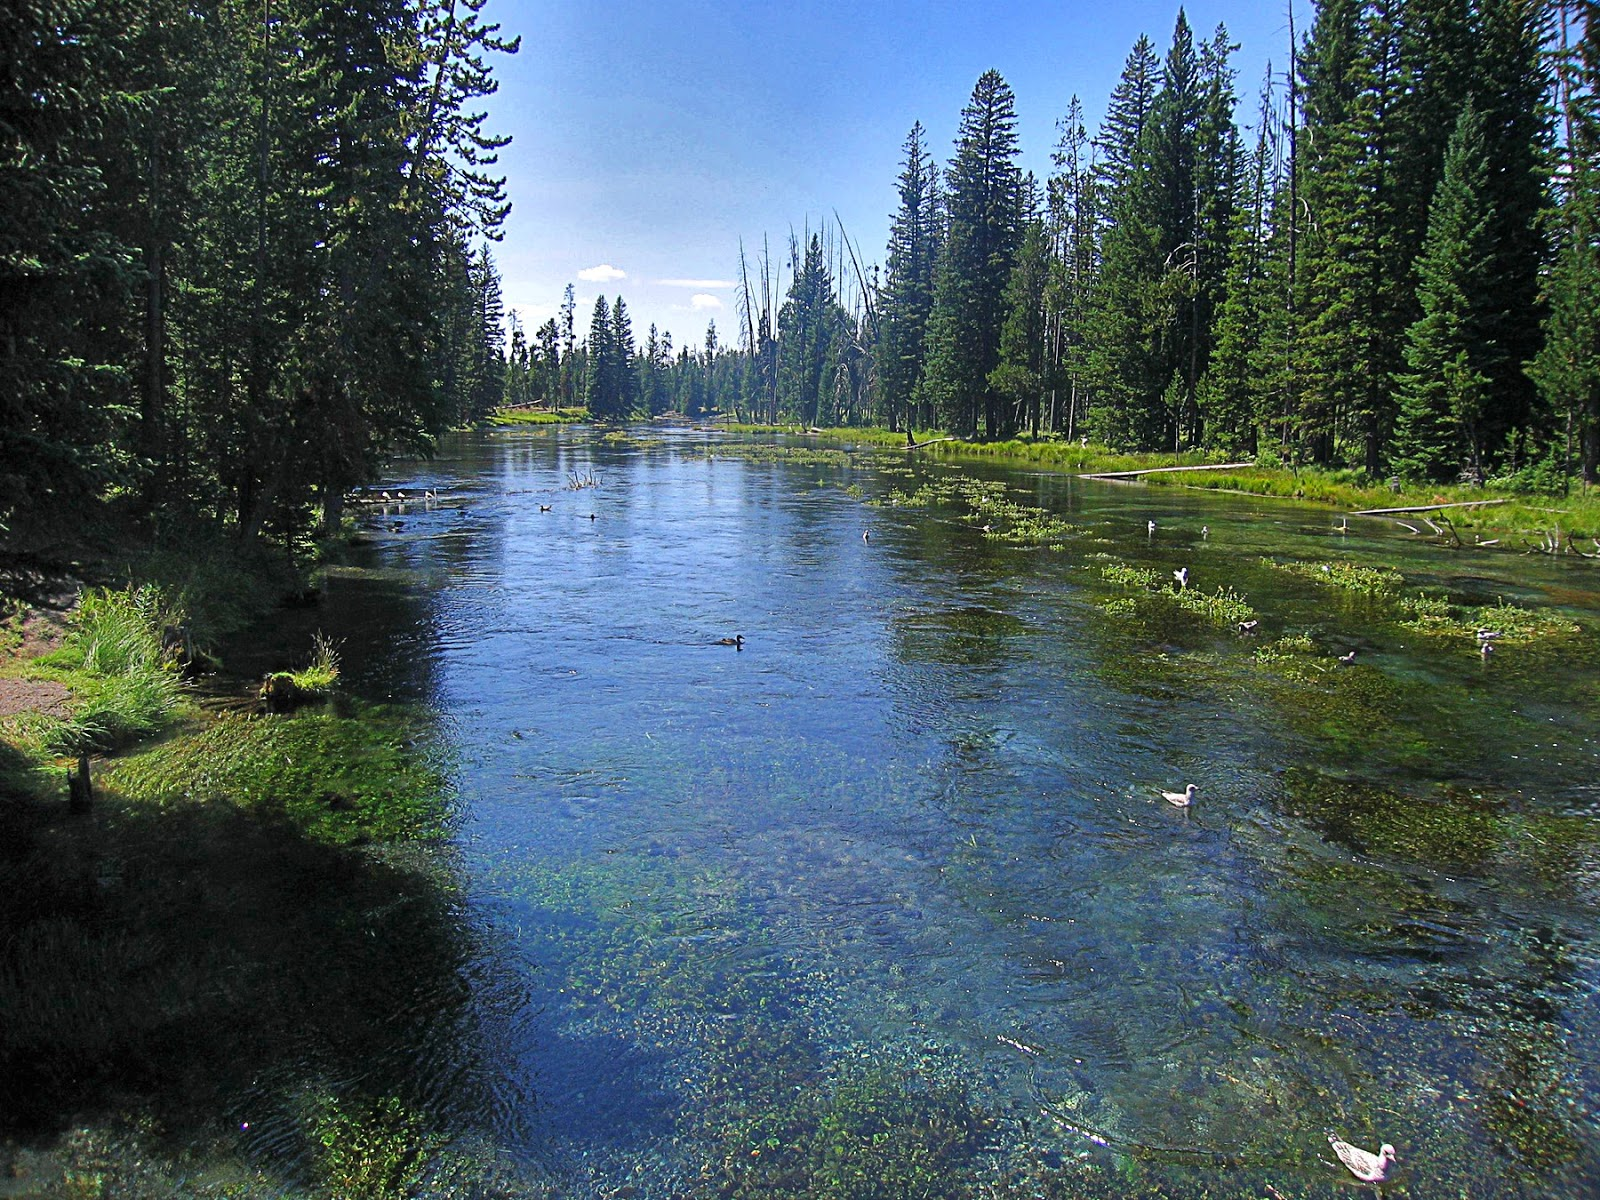 Idaho Montana Pioneer Mountains Hebgen Lake Yellowstone Island Park Big Spring Lemhi Beaverhead geology travel trip copyright RocDocTravel.com